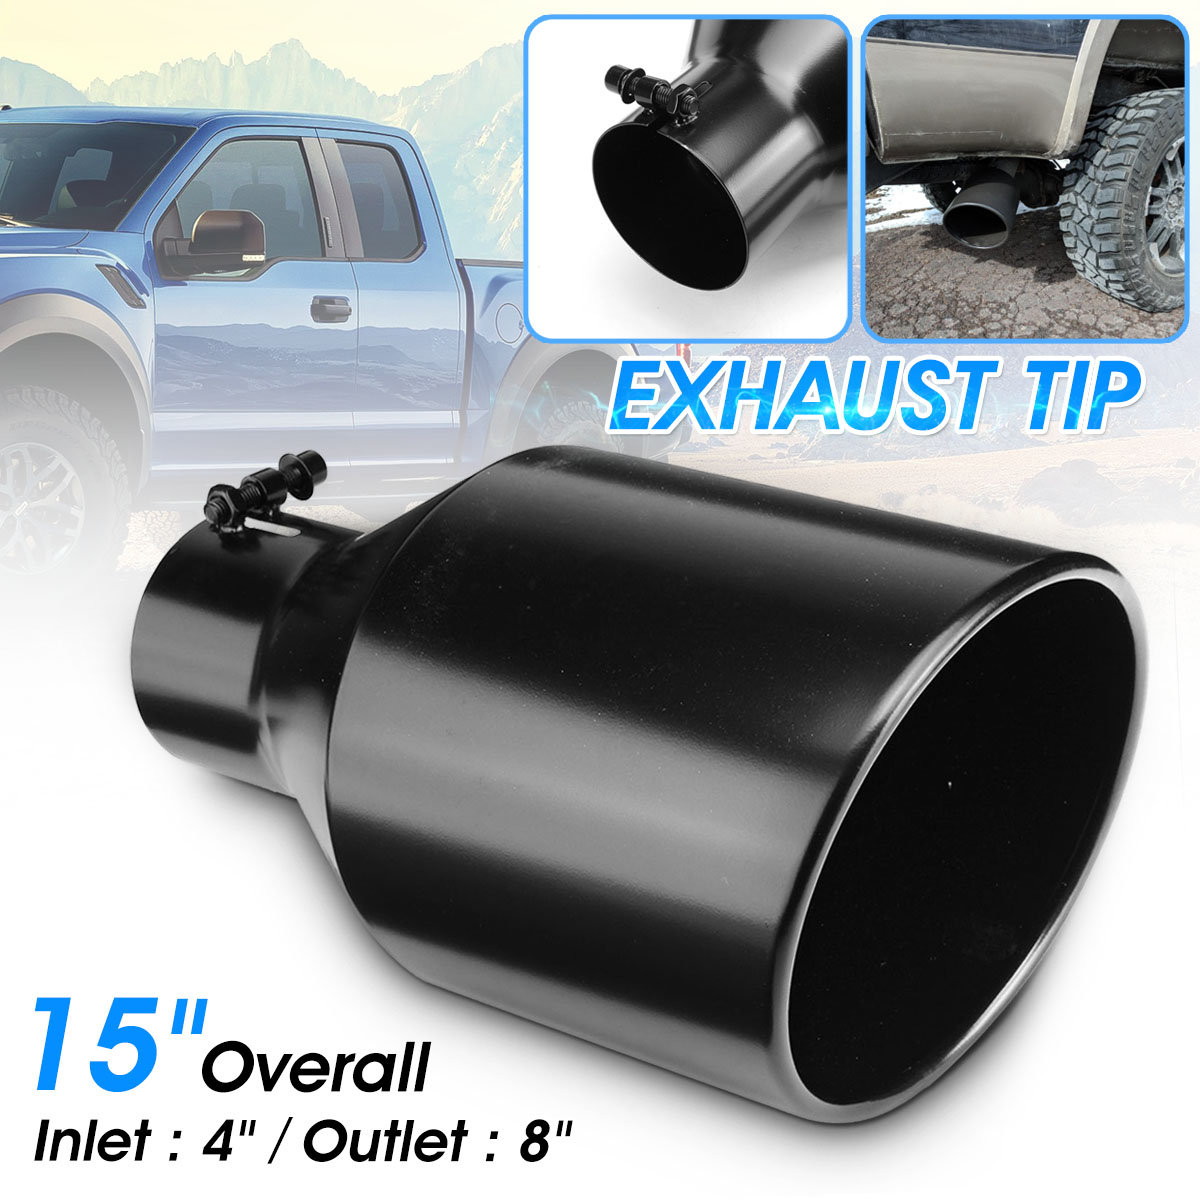 Universal Car Exhaust Muffler 4 inlet 8 Outlet Exhaust Tip Pipe Stainless Steel Tail Tube